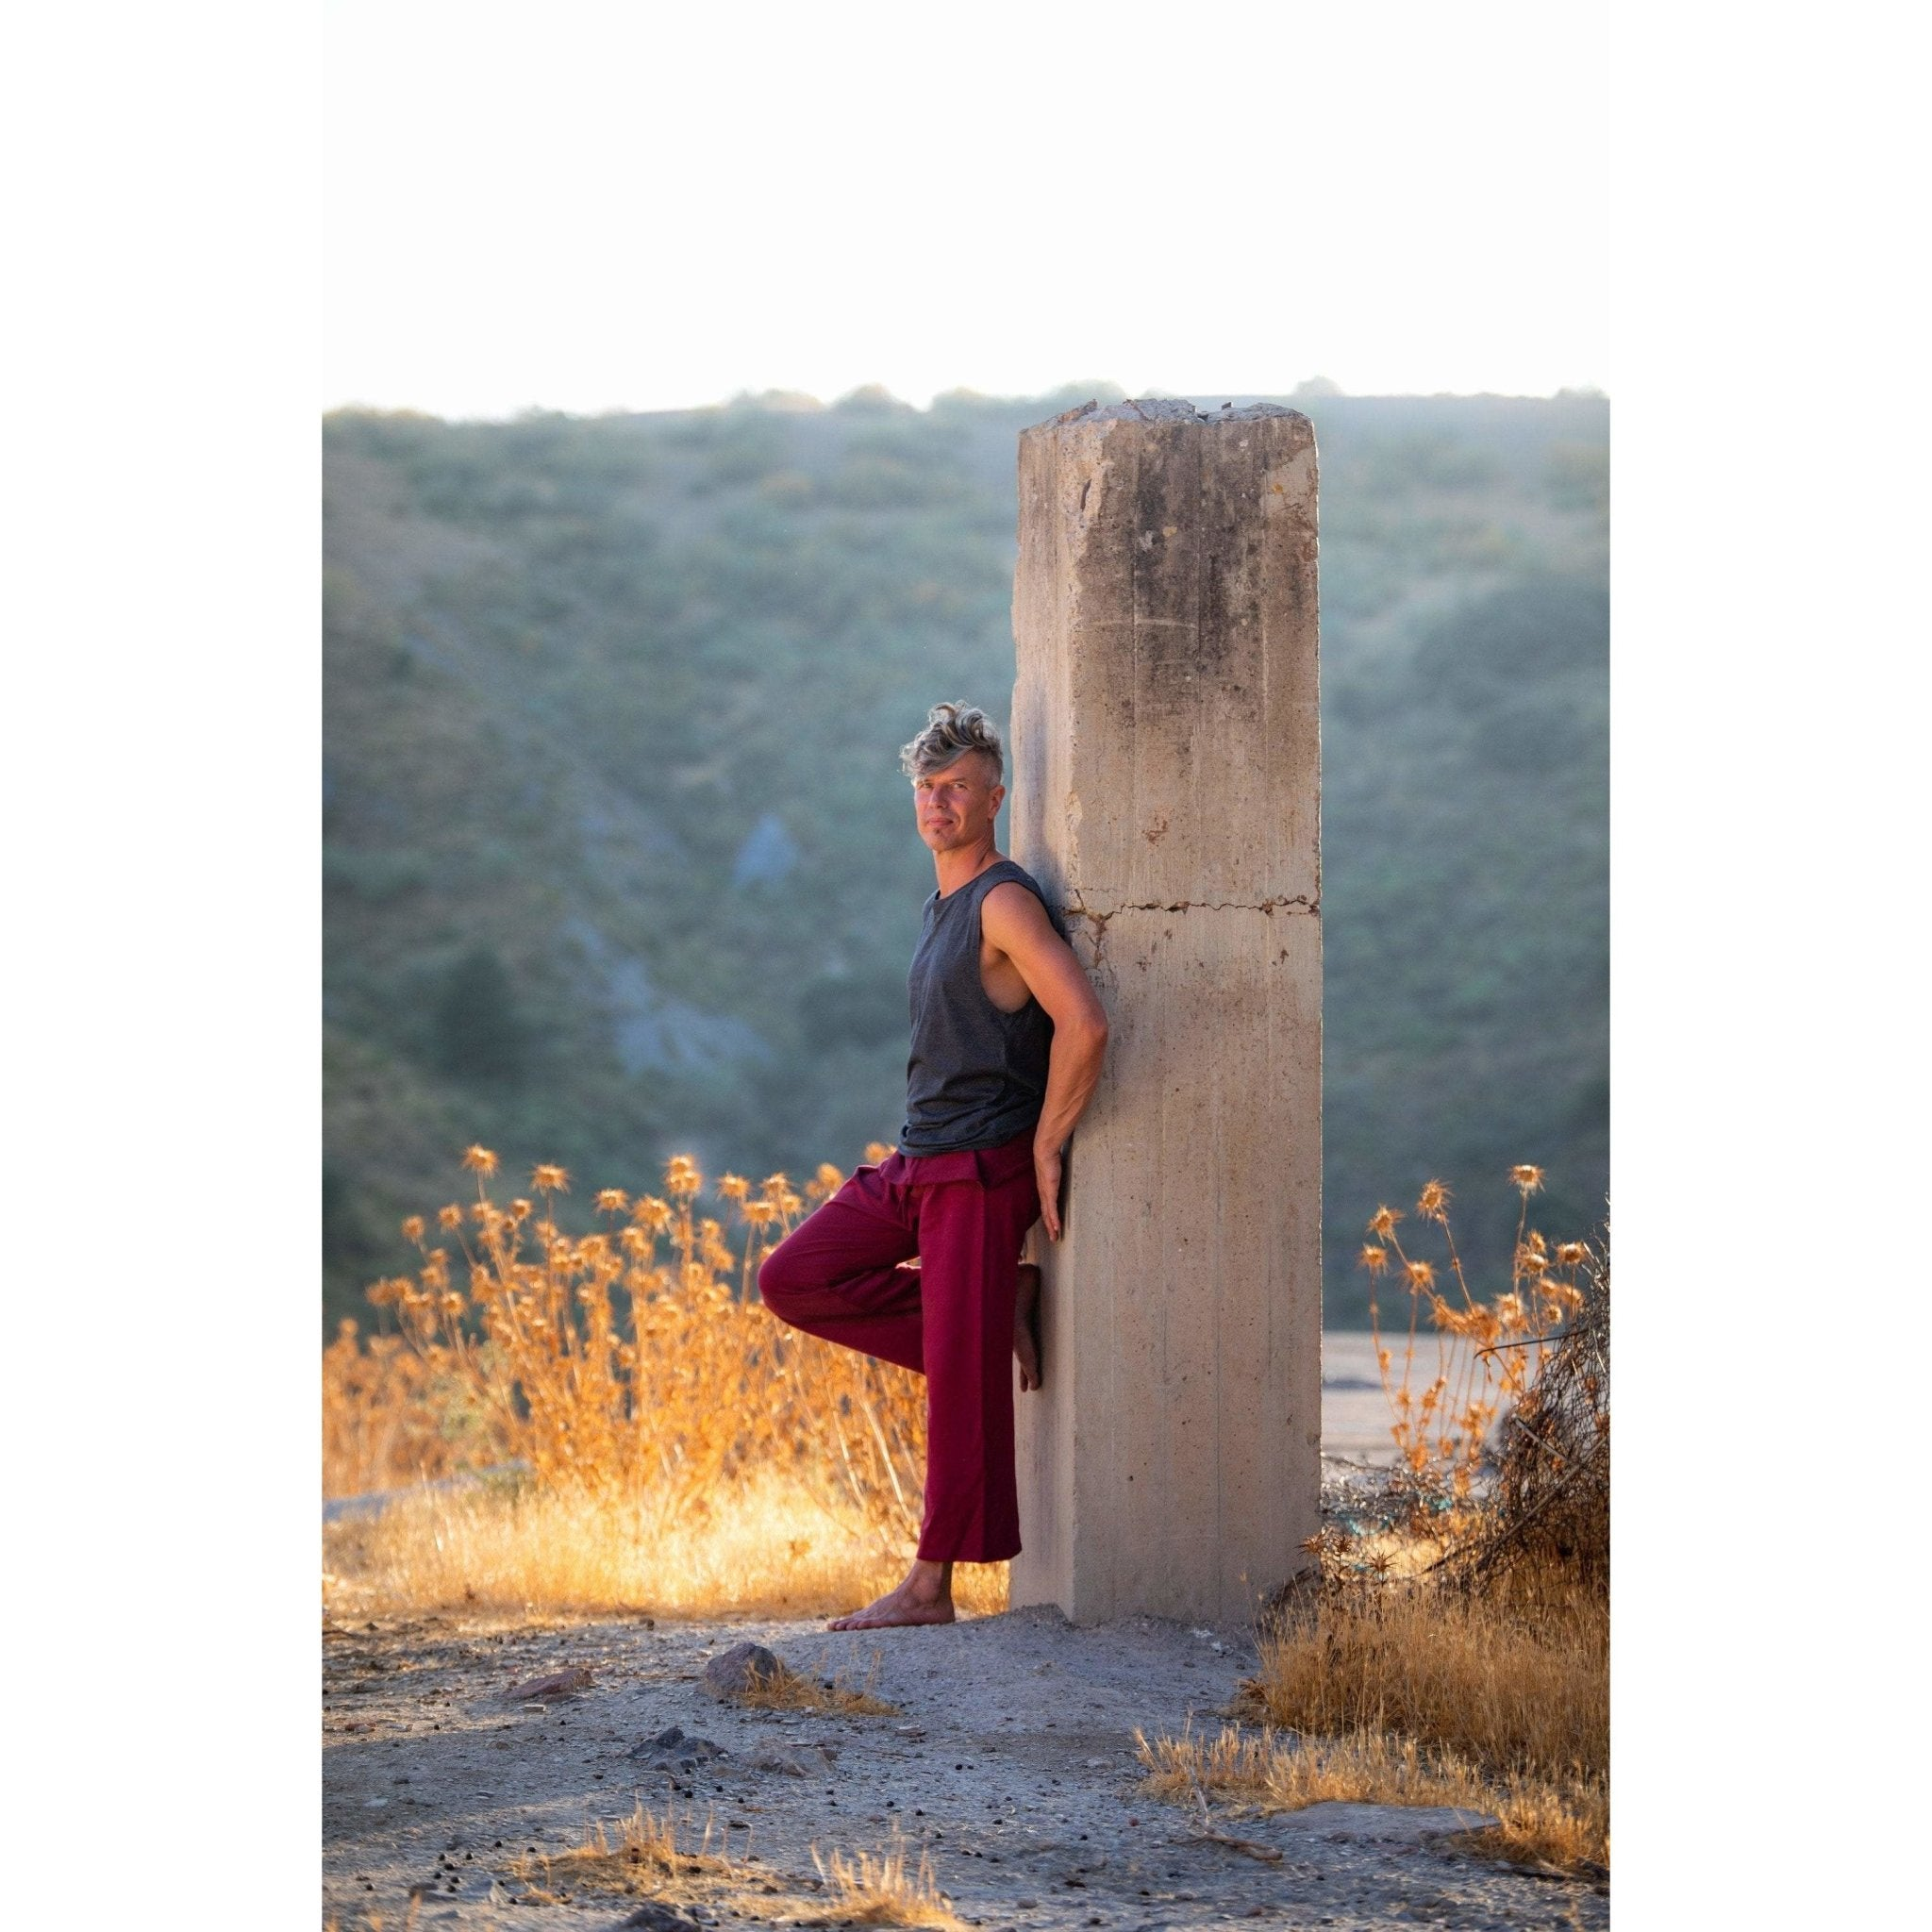 Bruma pantalon - Uranta Mindful Clothing